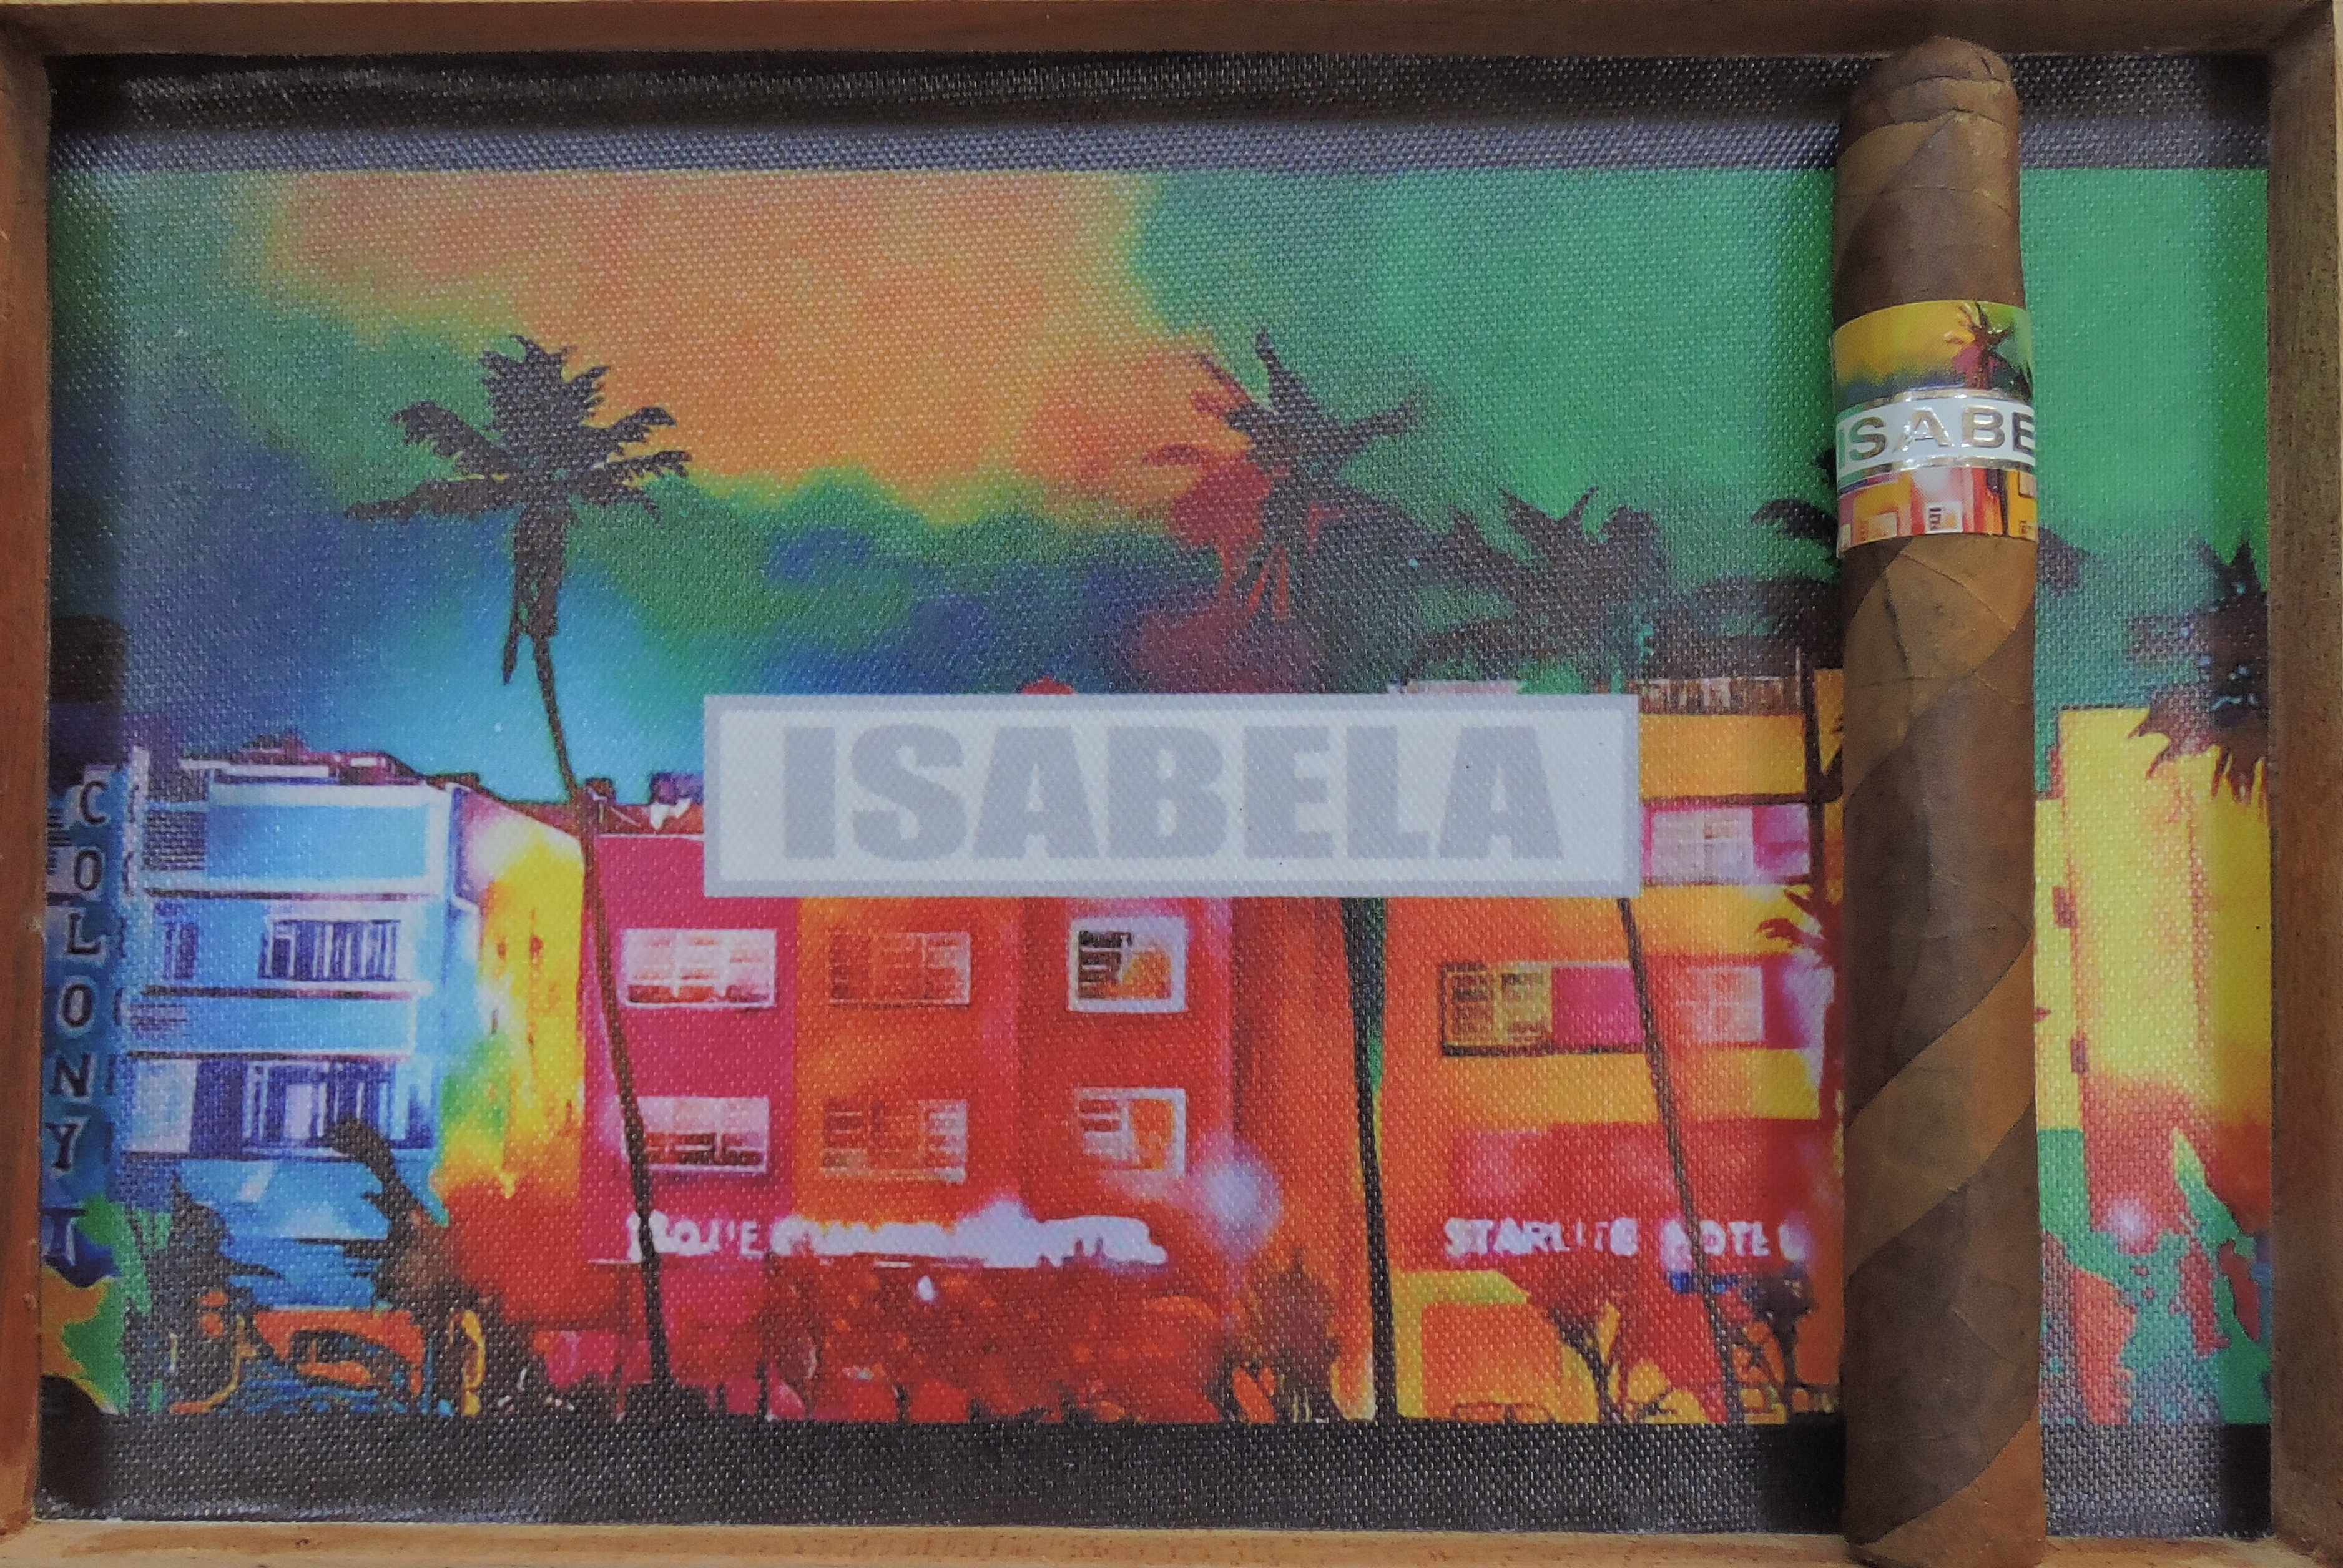 Cigar News: Isabela Cigar Company Releases Stardust